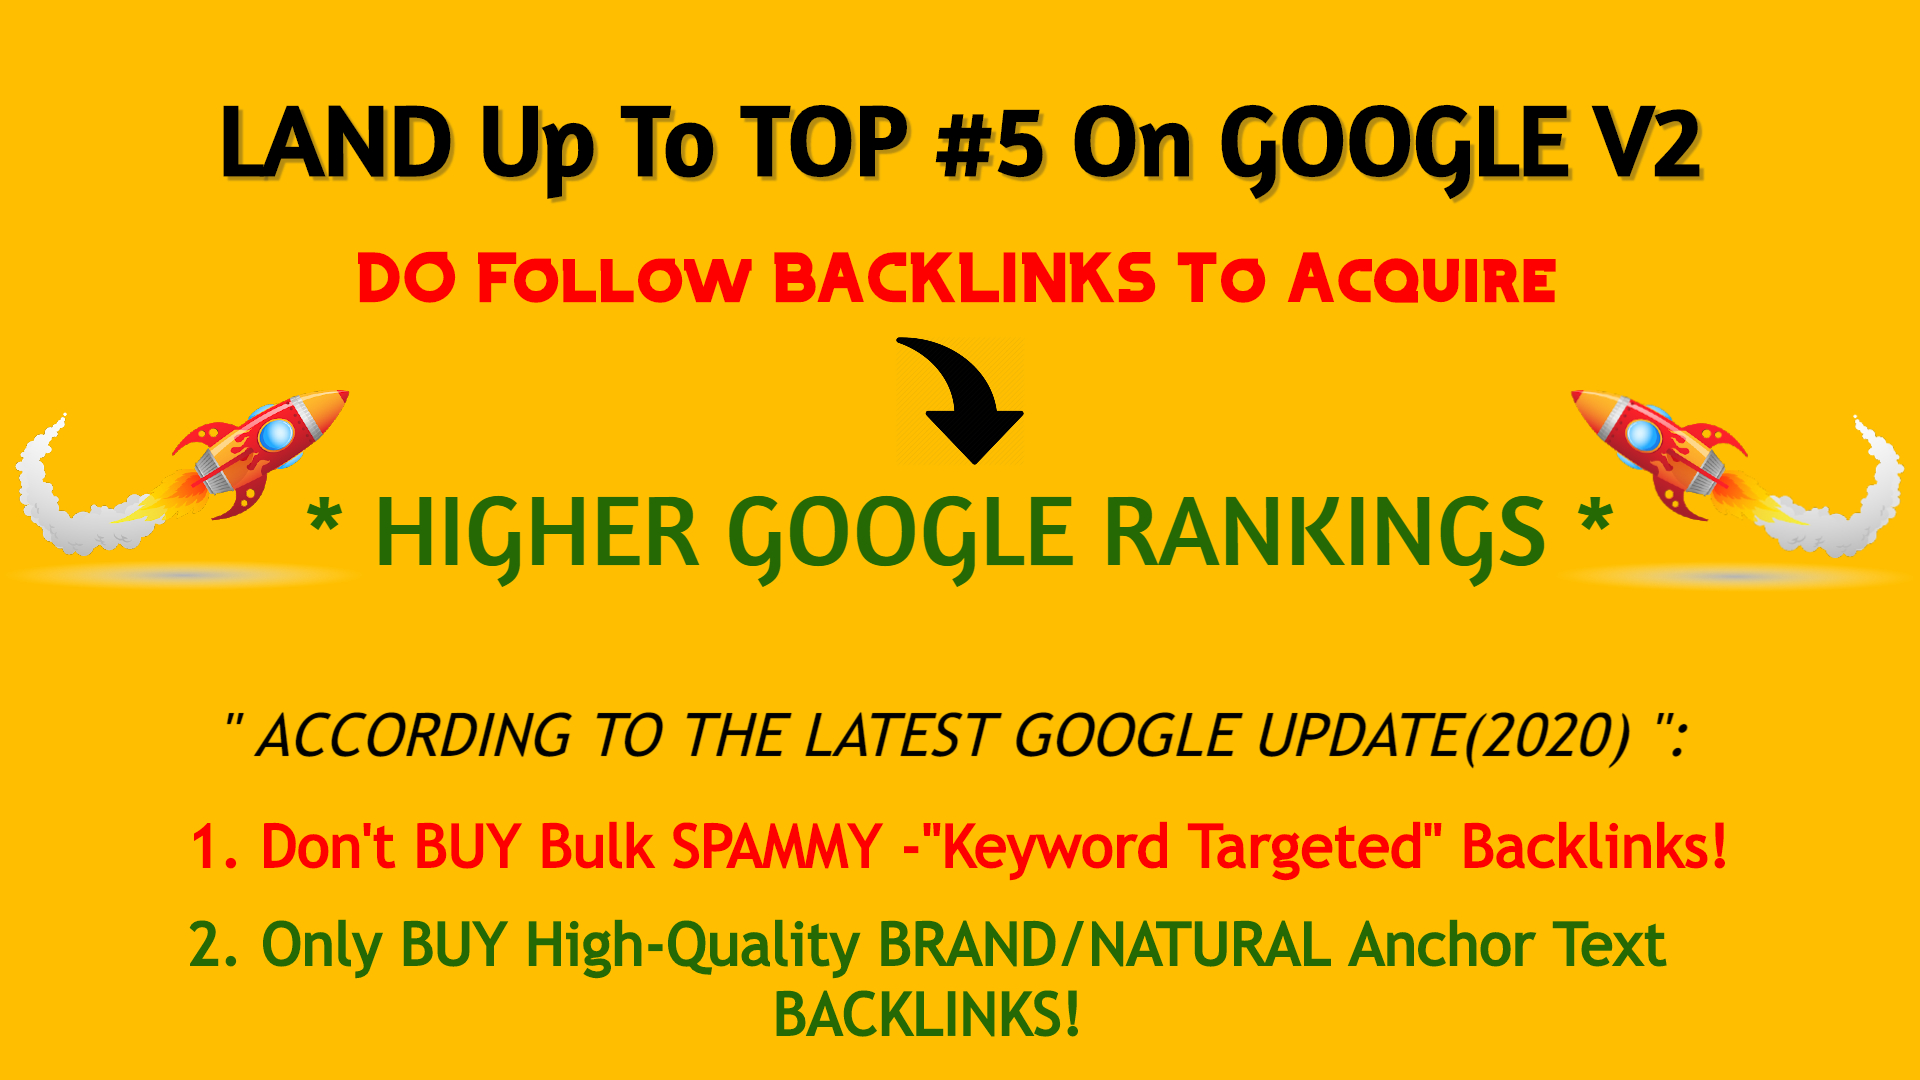 Land Up To Top 5 On Google V2 - Keyword Oriented Articles